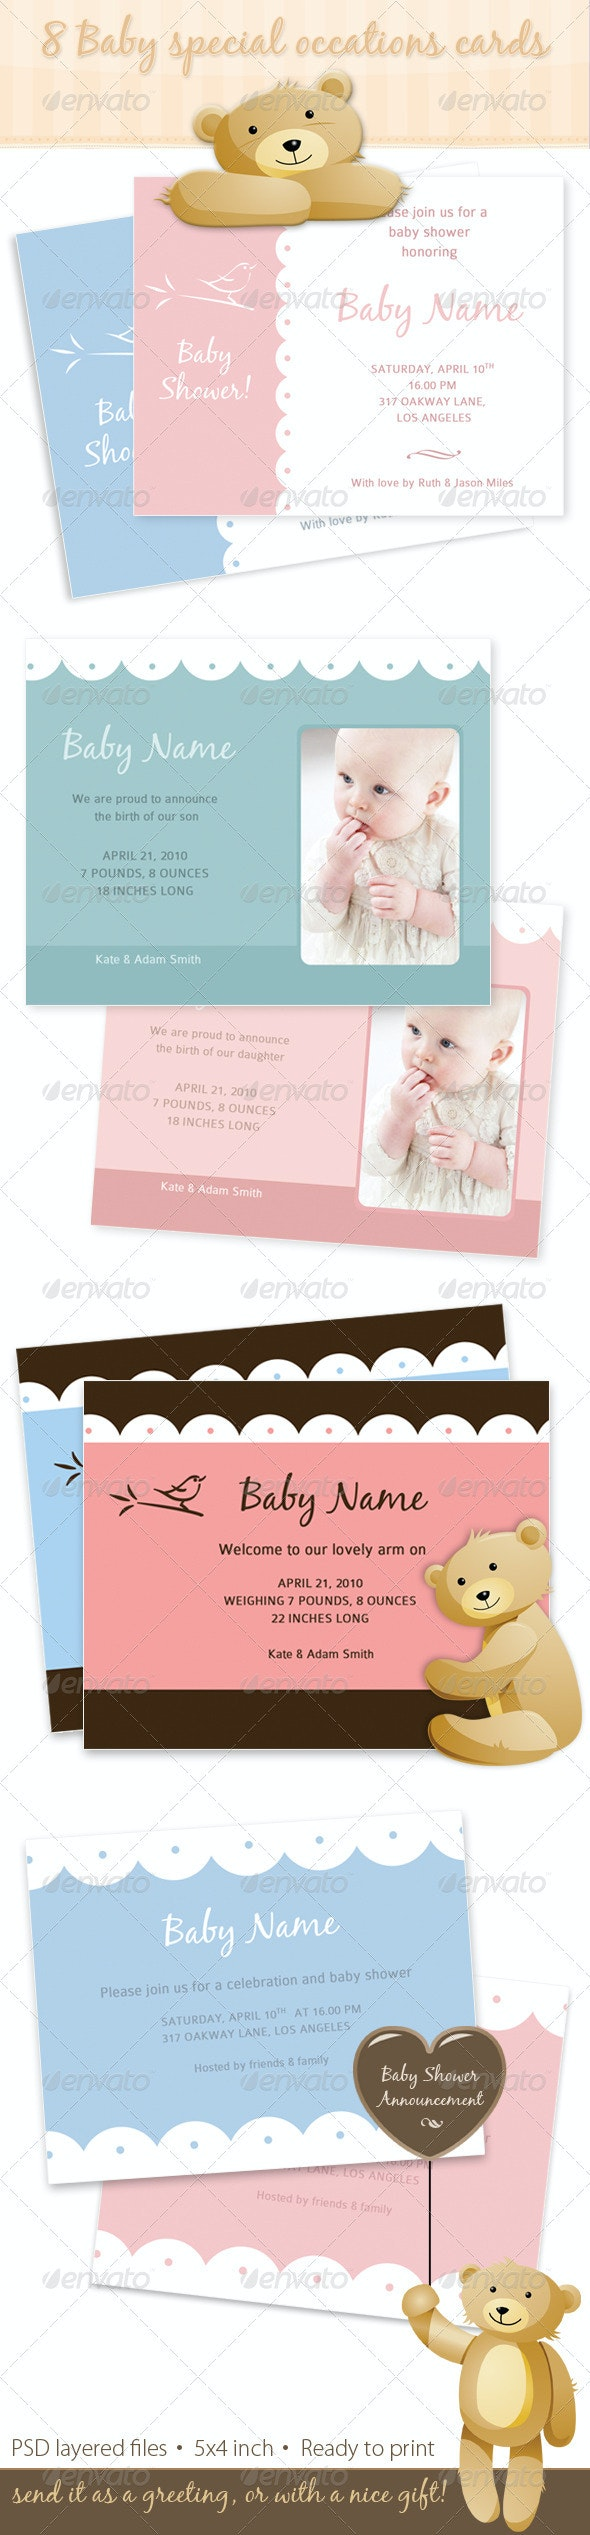 8 Baby Special Occations Cards babyshower birth  - Family Cards & Invites